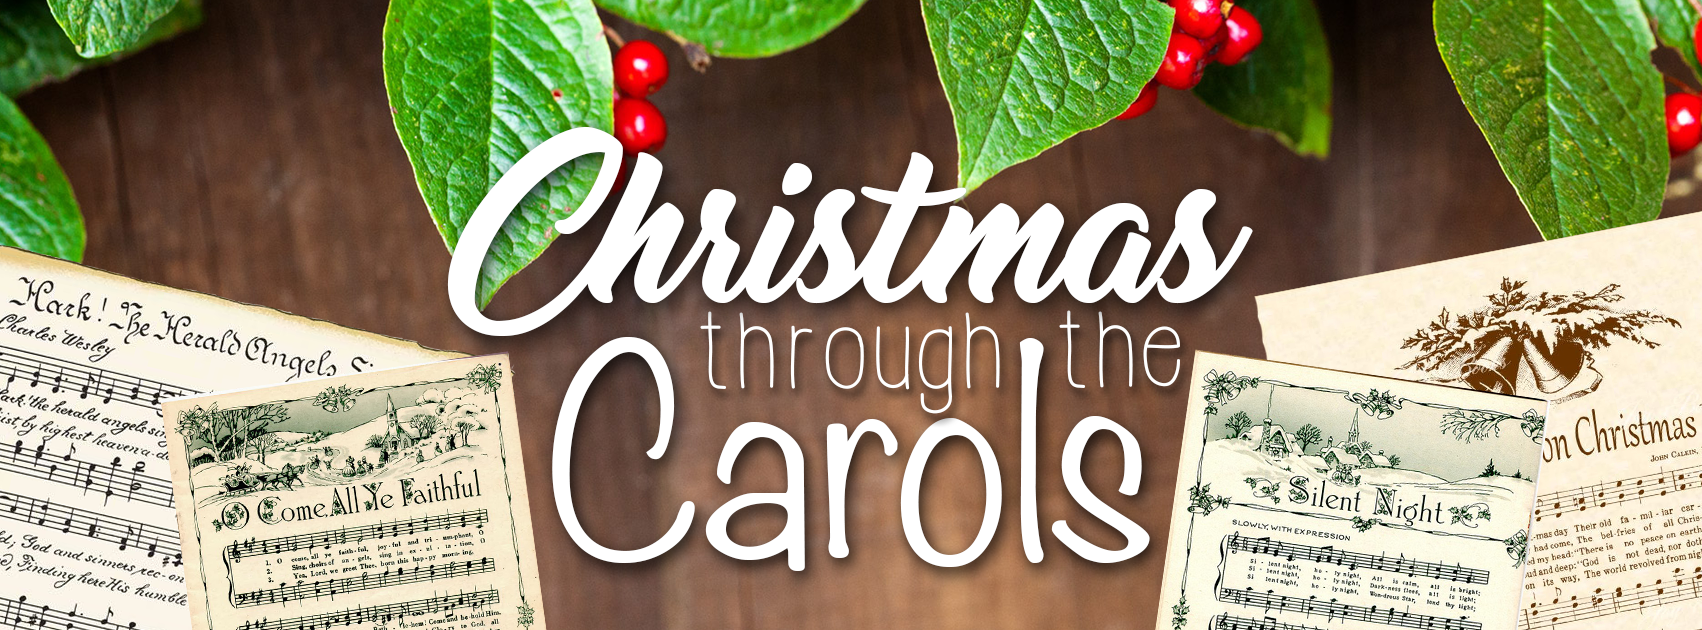 Christmas Through The Carols, Part 3: I Heard The Bells On Christmas Day